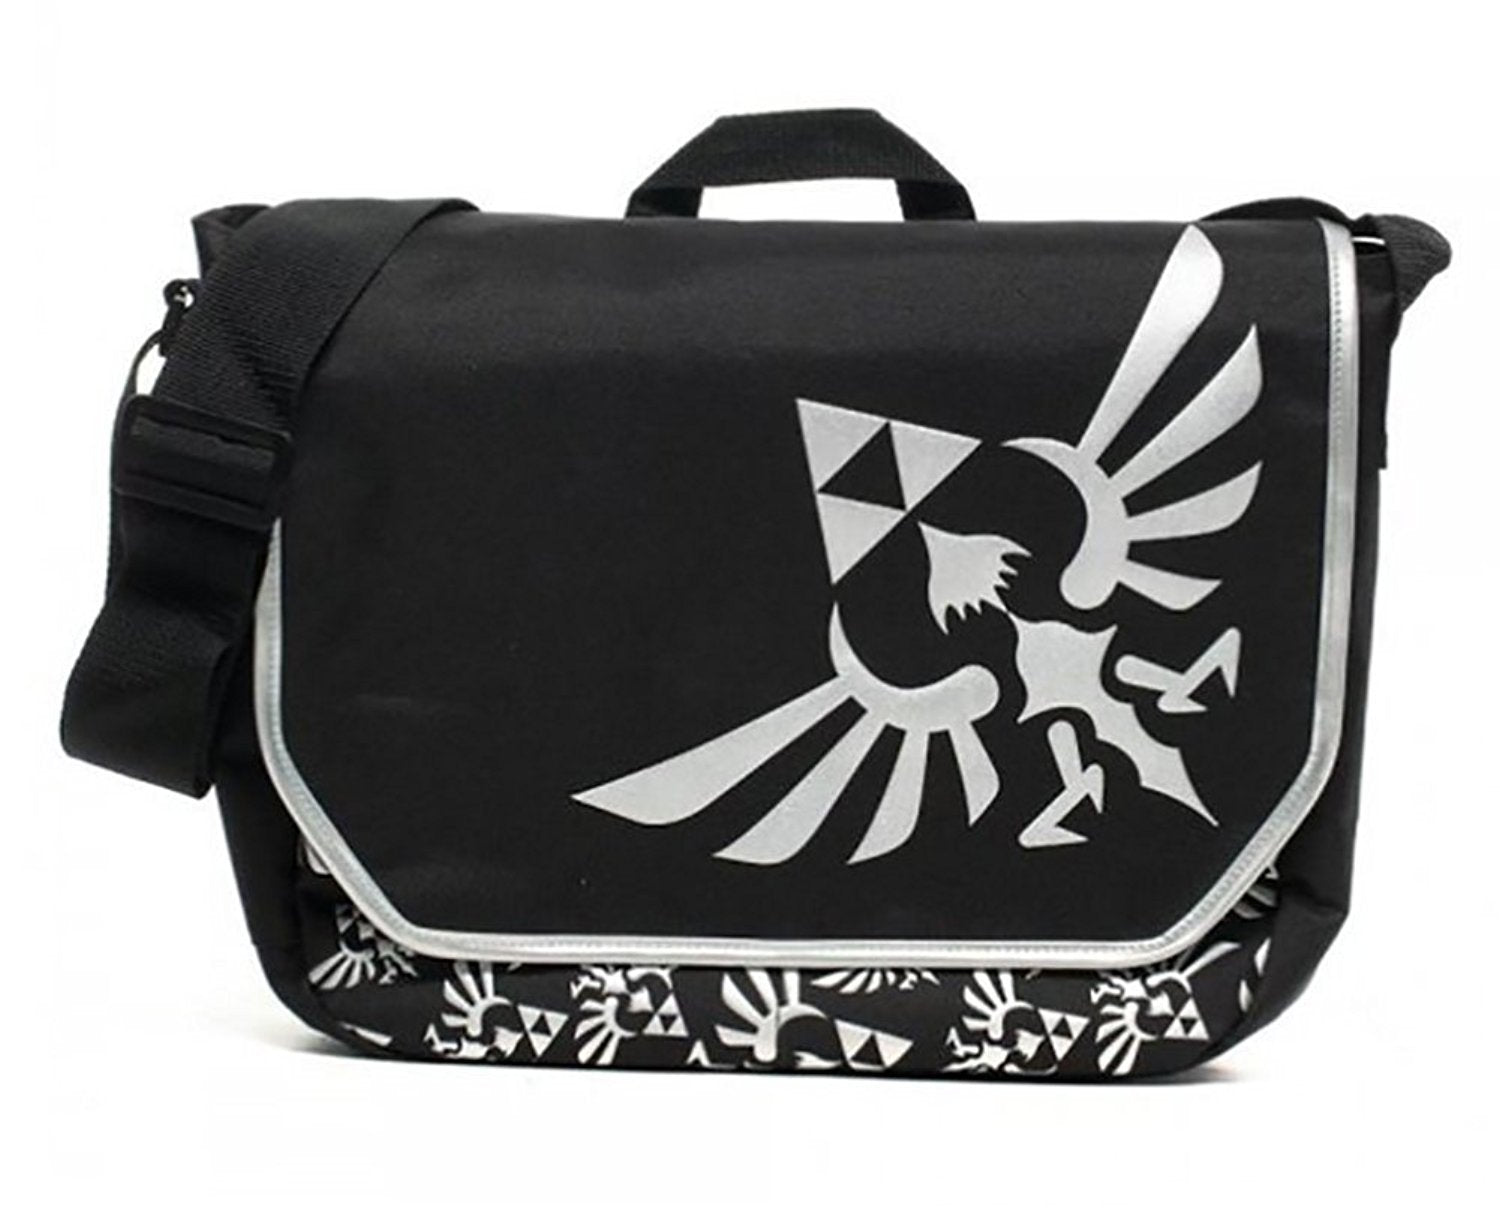 The Legend of Zelda Black Messenger Bag School Shoulder Crossbody Satchel Cosplay Accessories